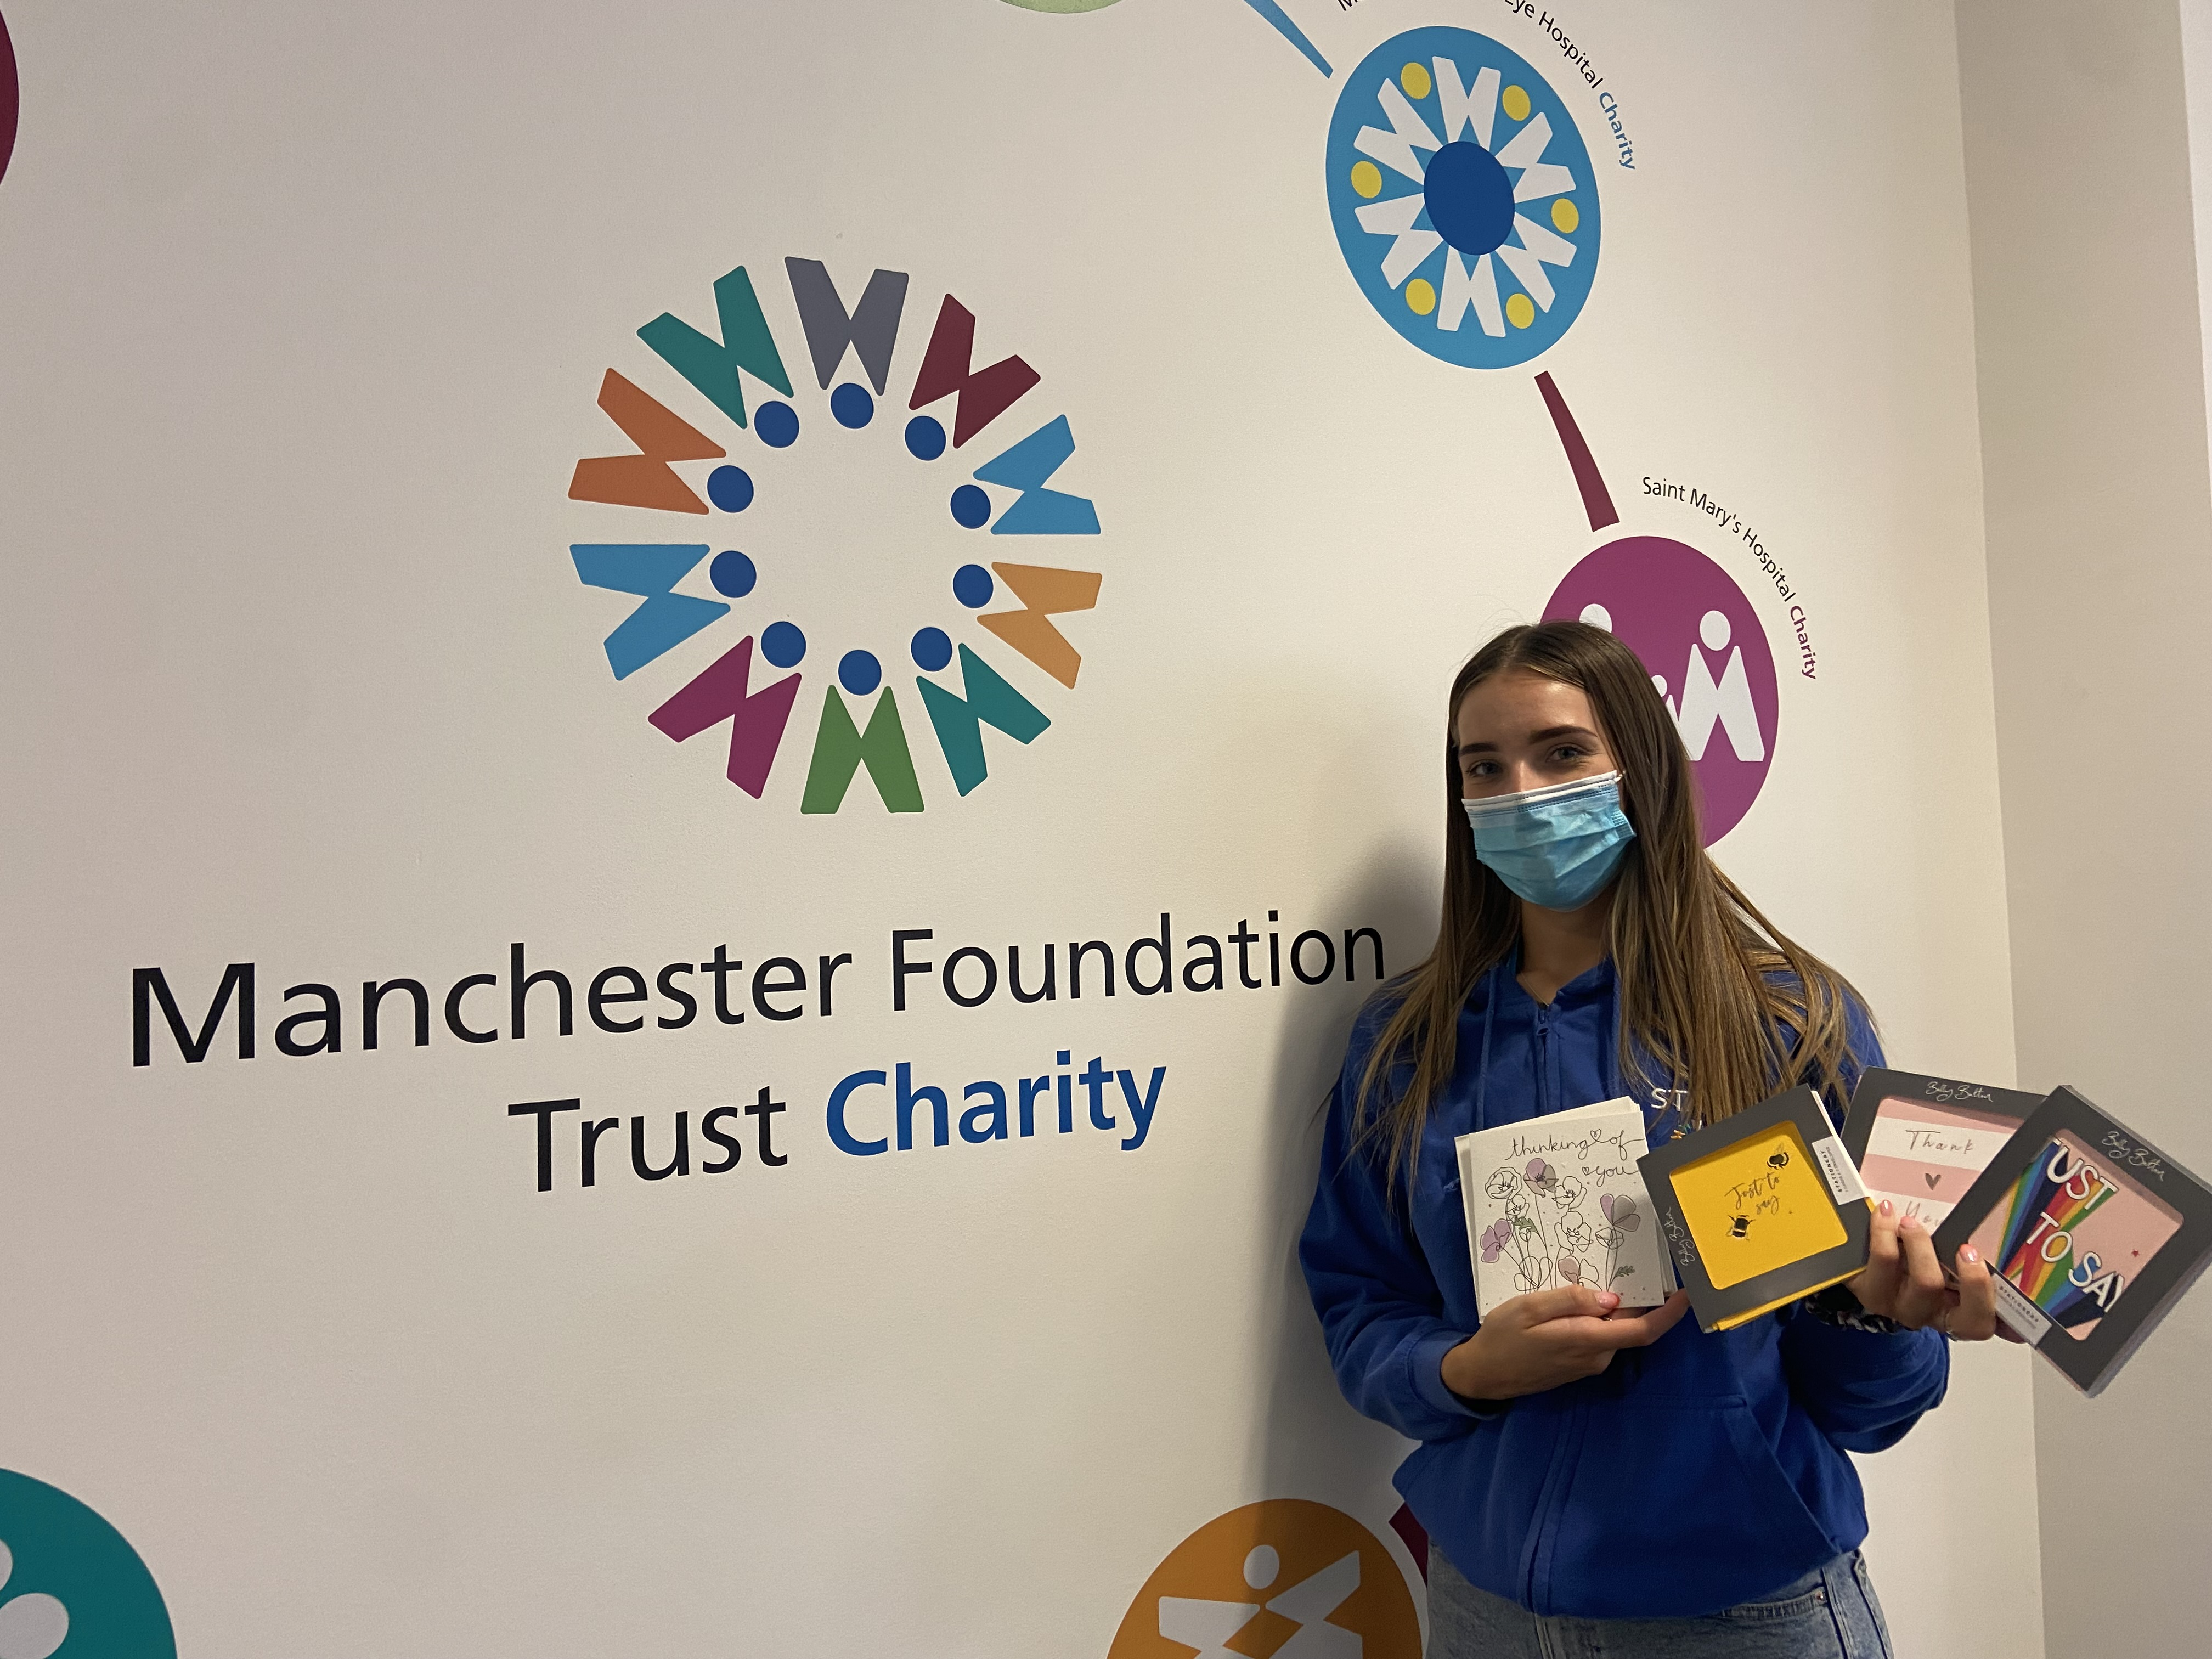 Above: Some of the donated Belly Button cards for Manchester Trust Foundation.